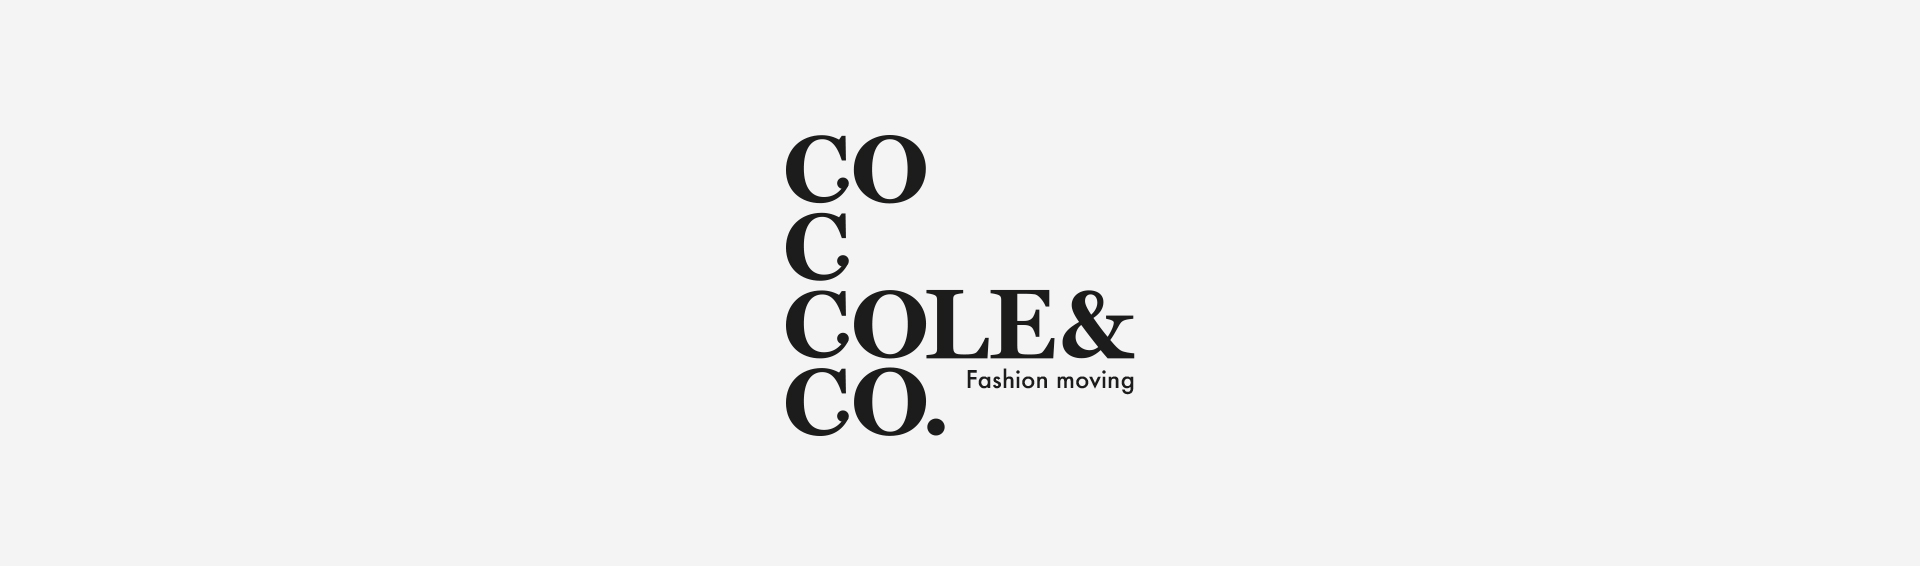 coccole_logotype_identity_corporate